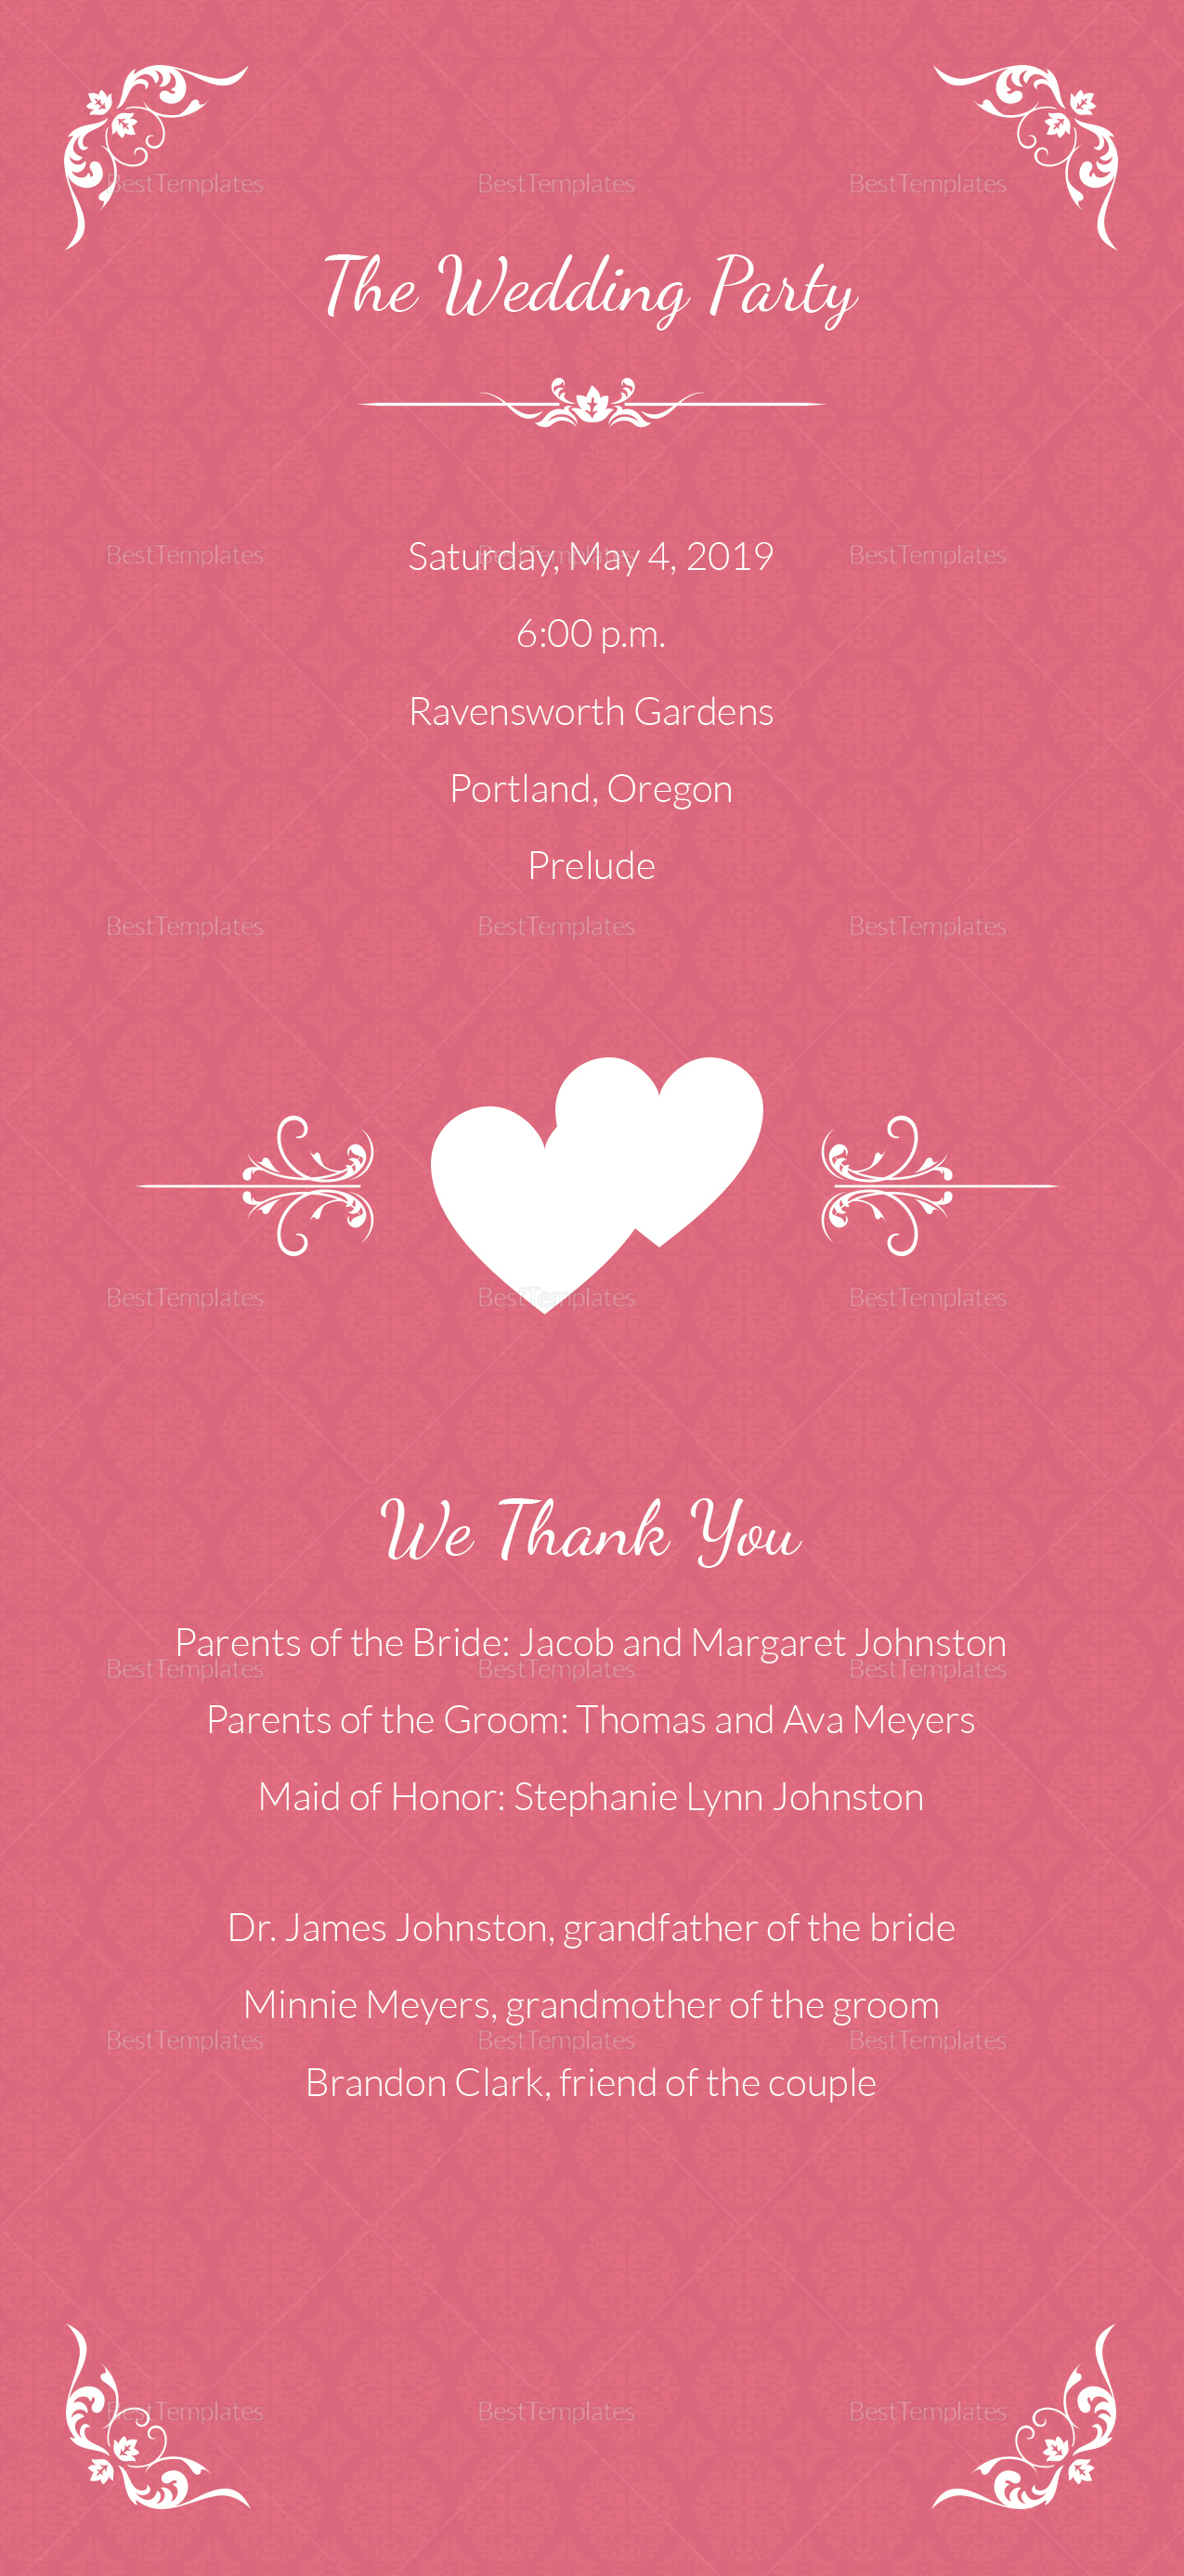 Sample Wedding Invitation Card Template 2